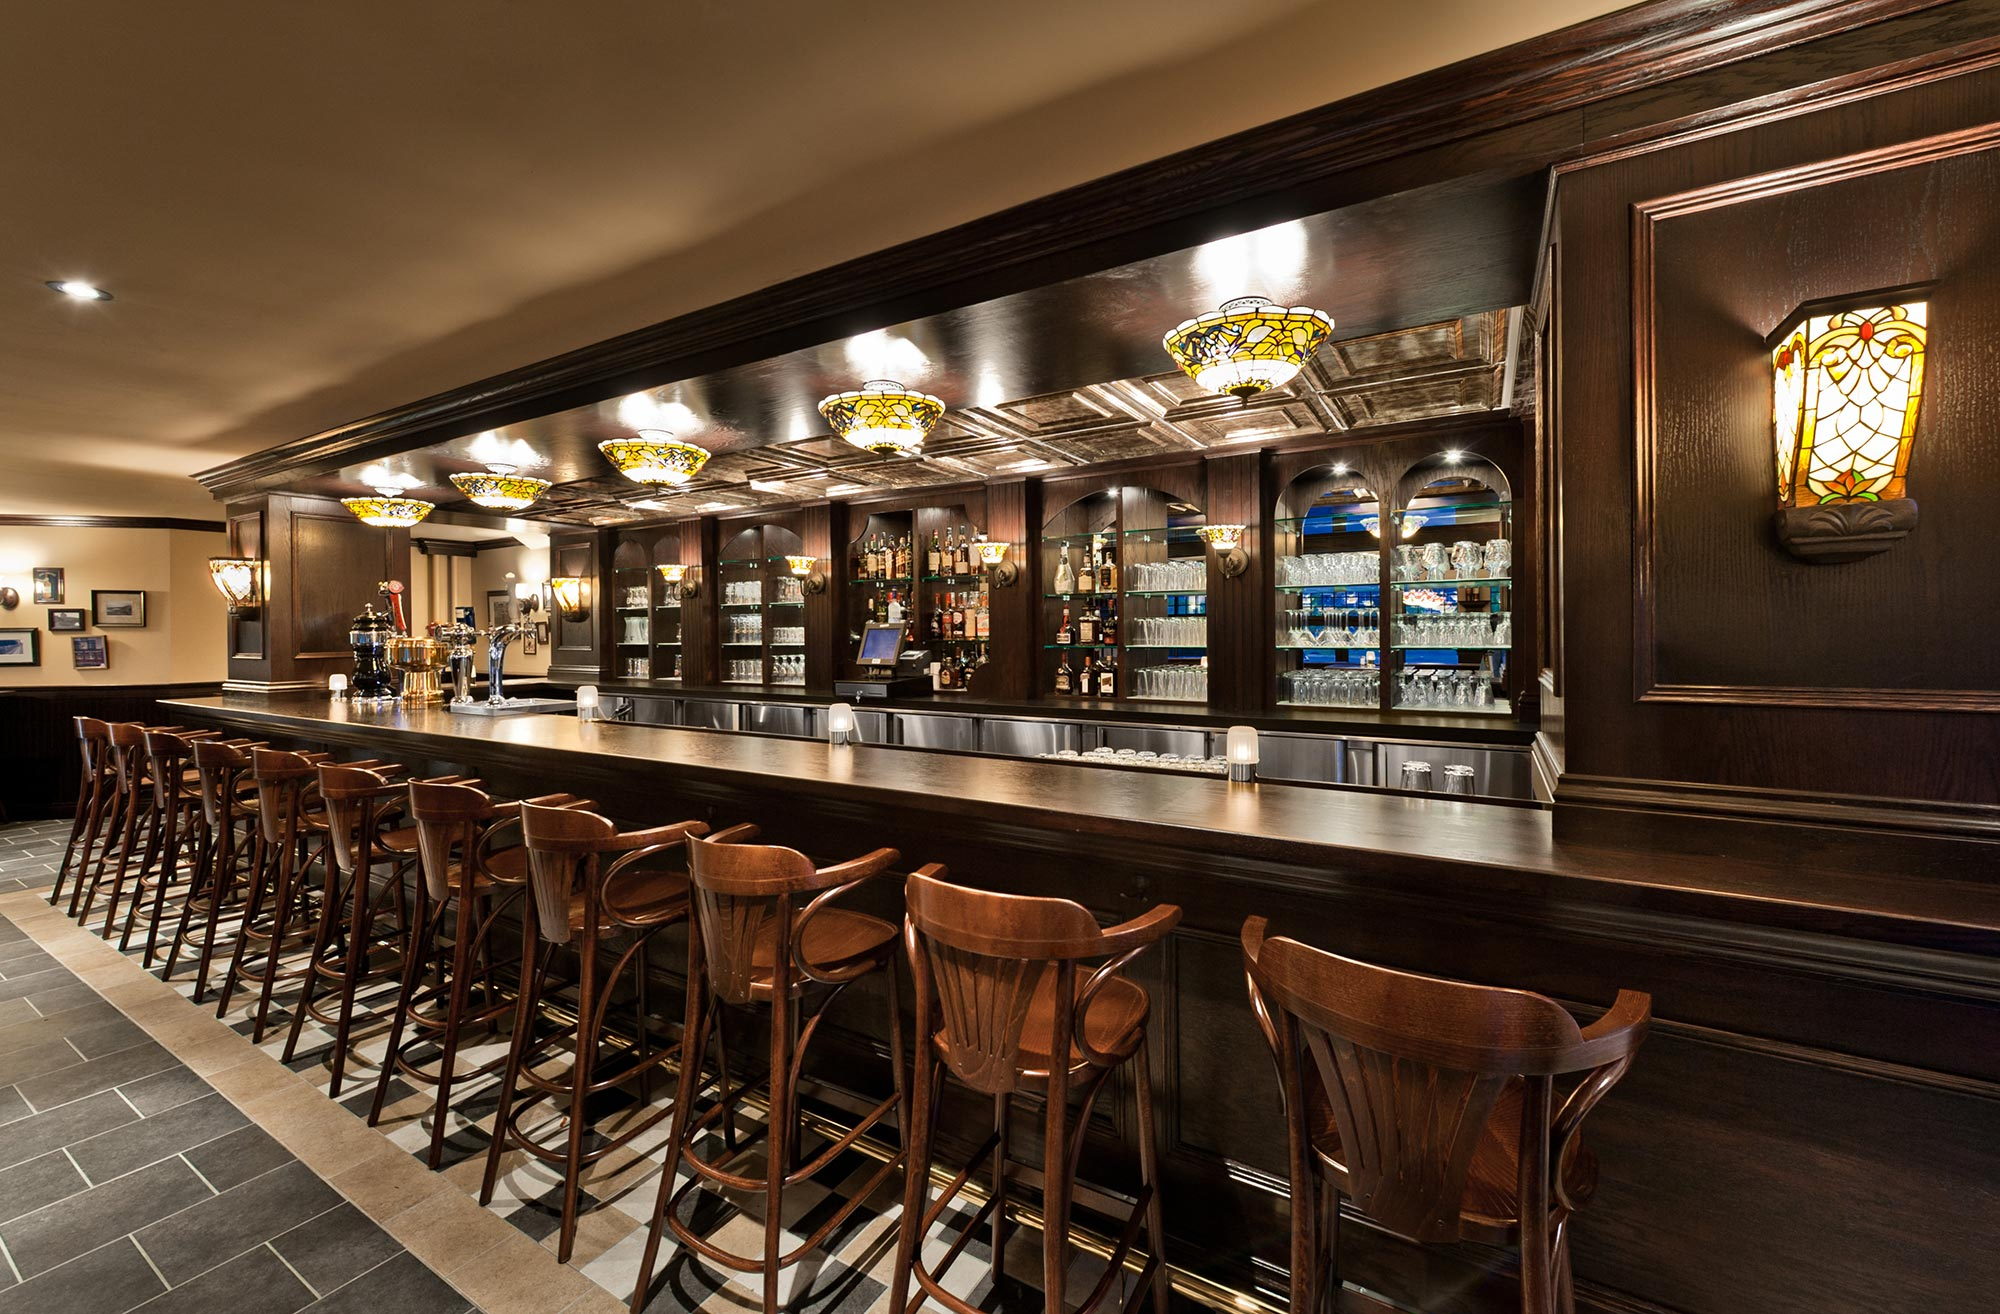 interior-design-restaurant-irish-pub-bar-stools.jpg